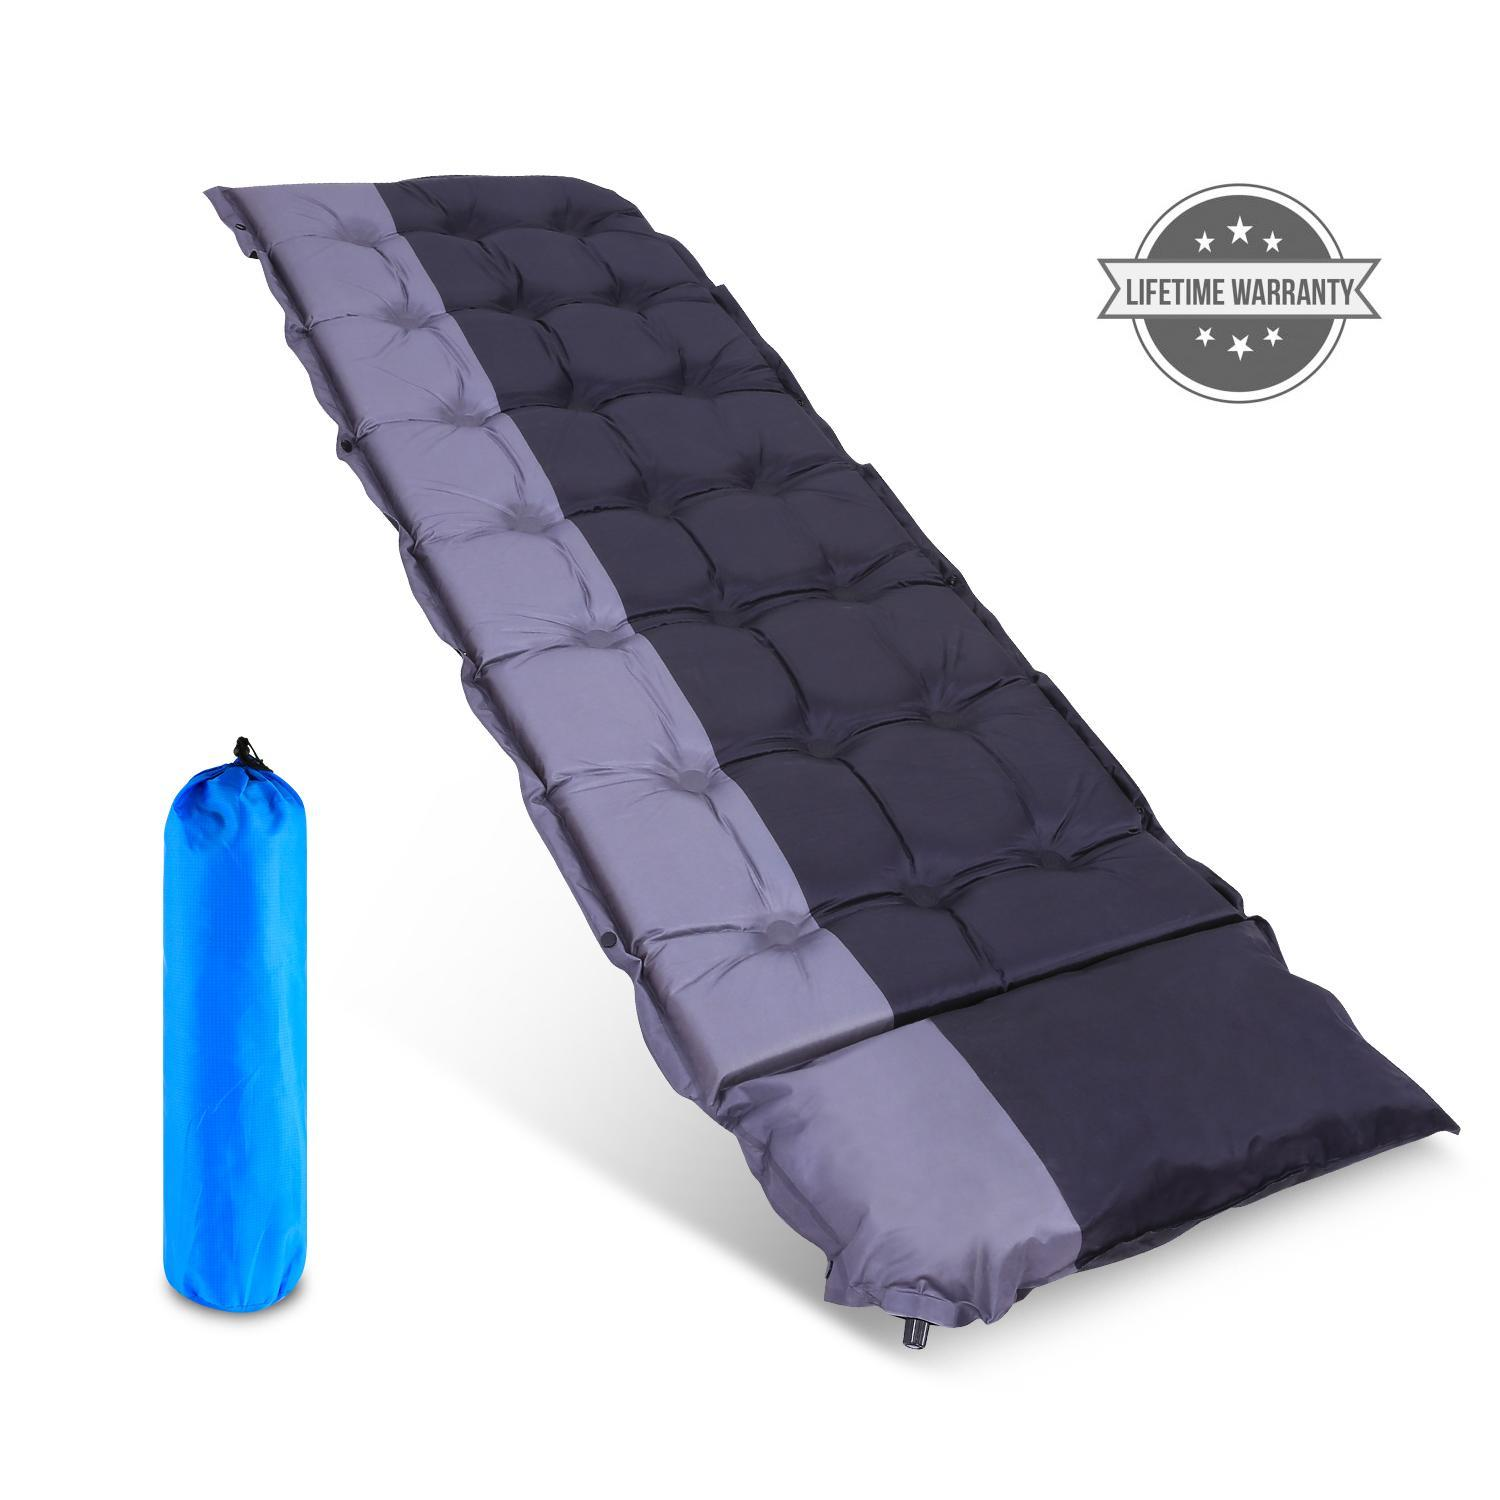 Self Inflating Sleeping Pad by W estern Owl Outfitters, for Camping, Backpacking, Hiking and Outdoors